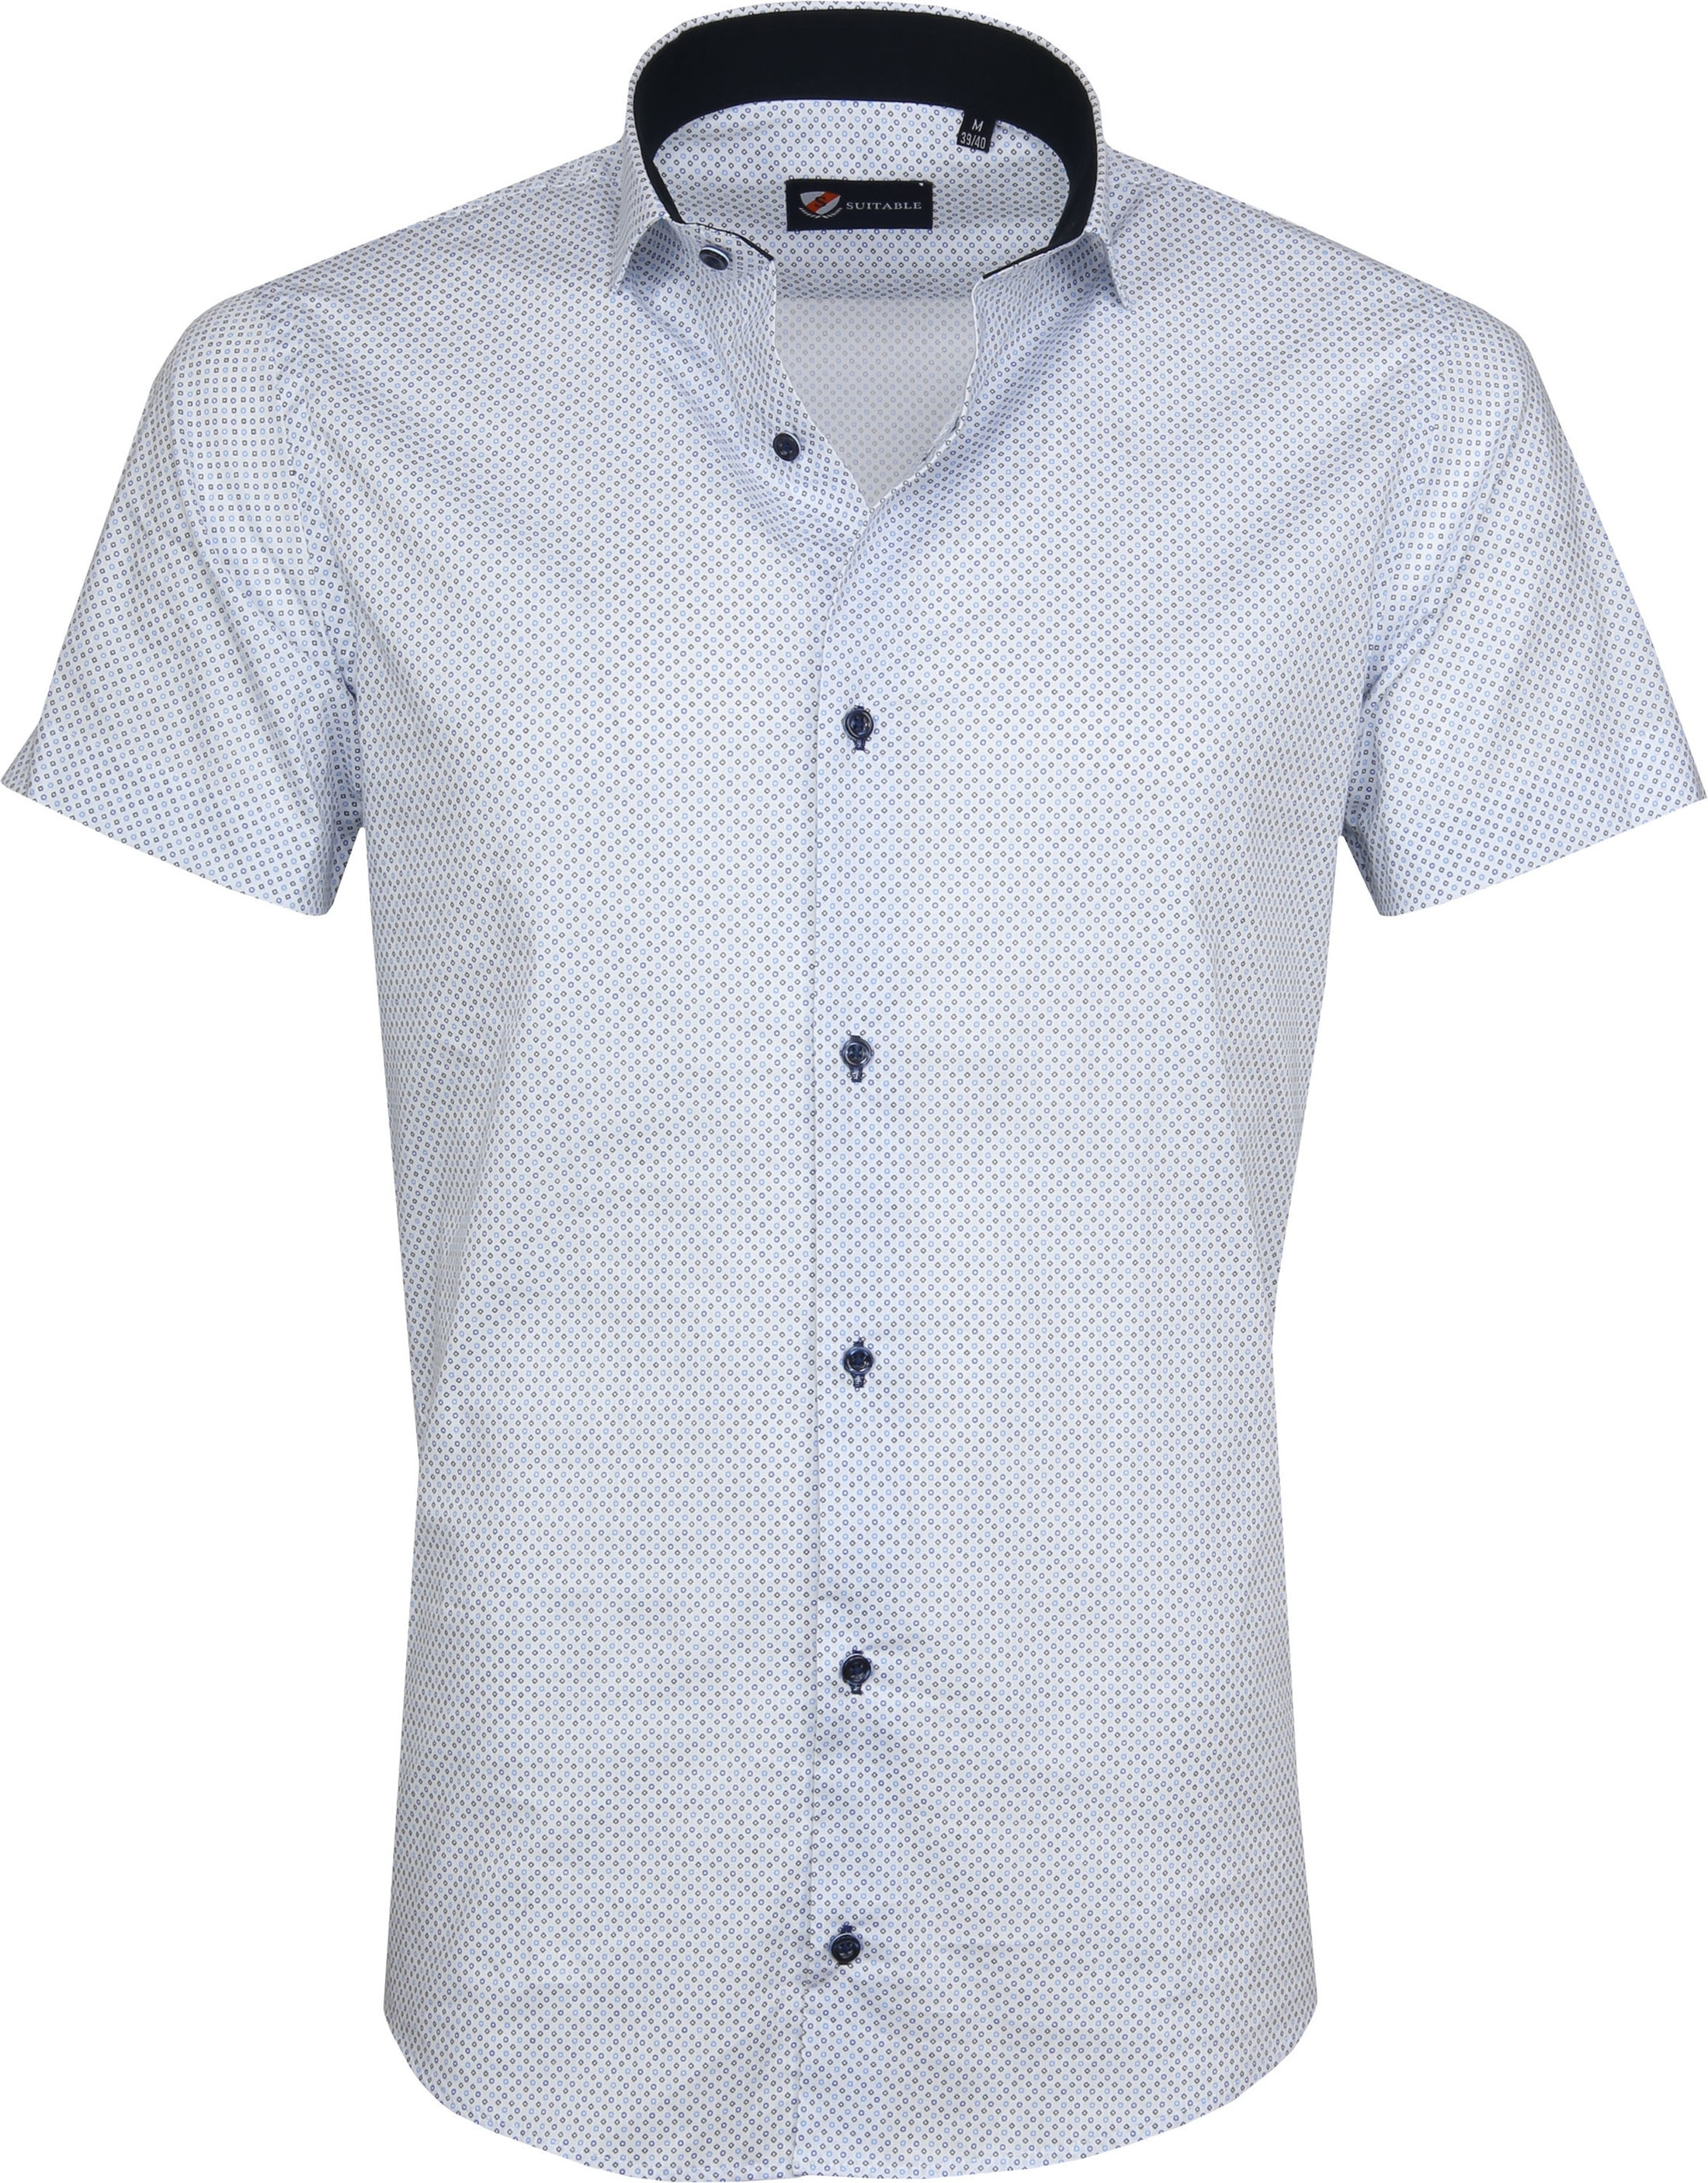 Suitable Shirt SS Carre White Blue foto 0